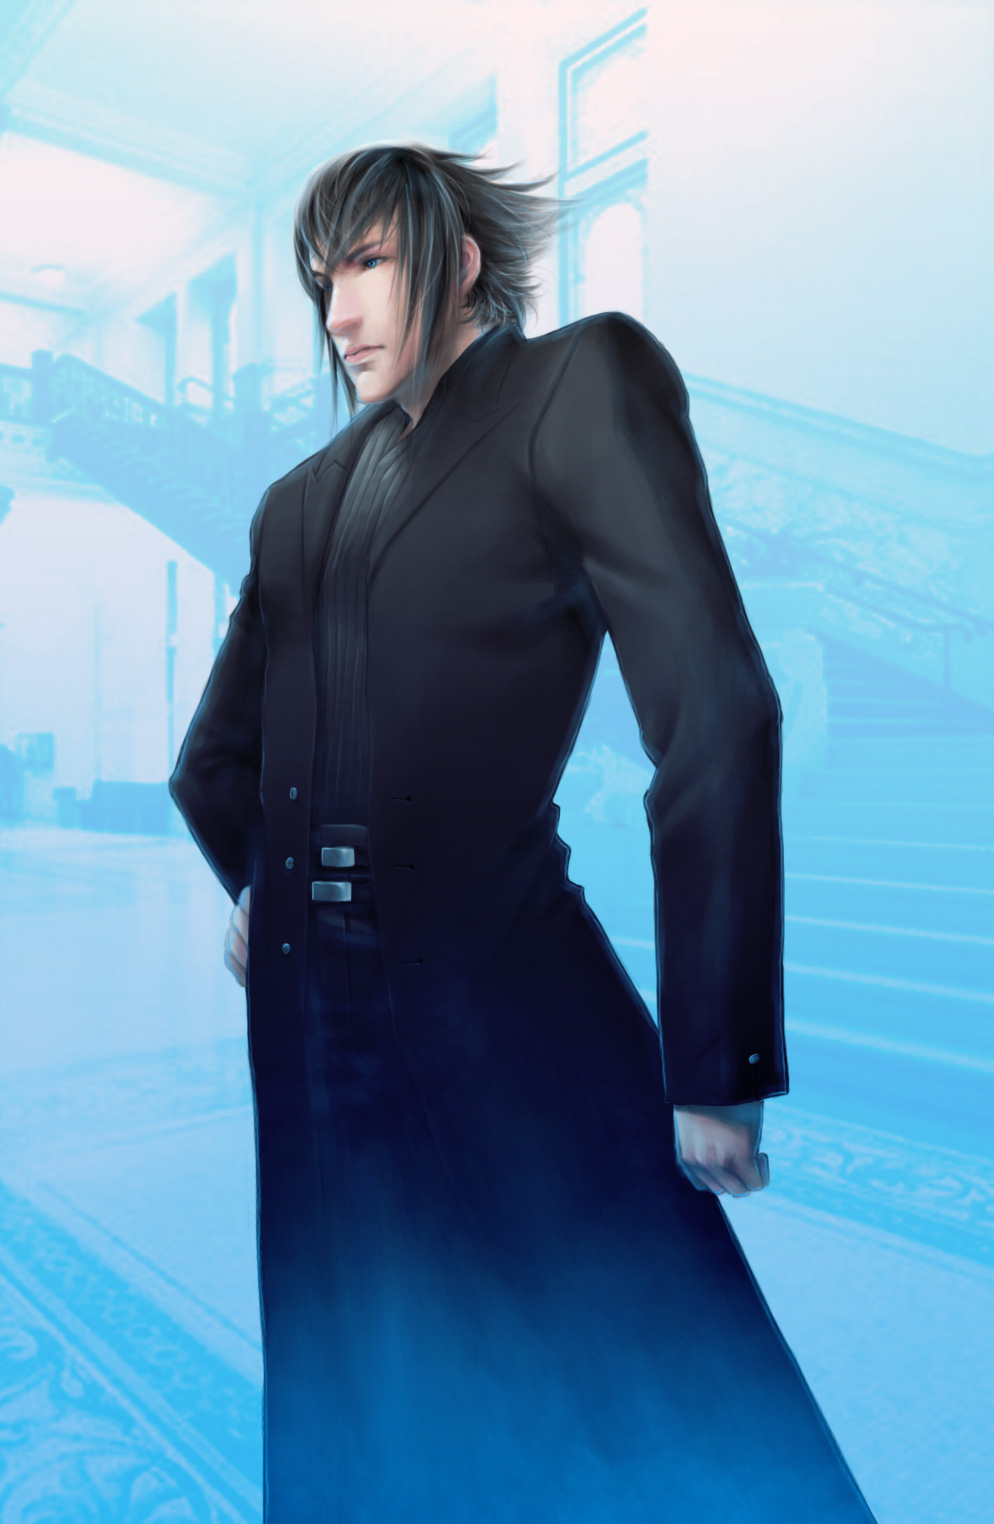 Noctis? by AngelusMortis